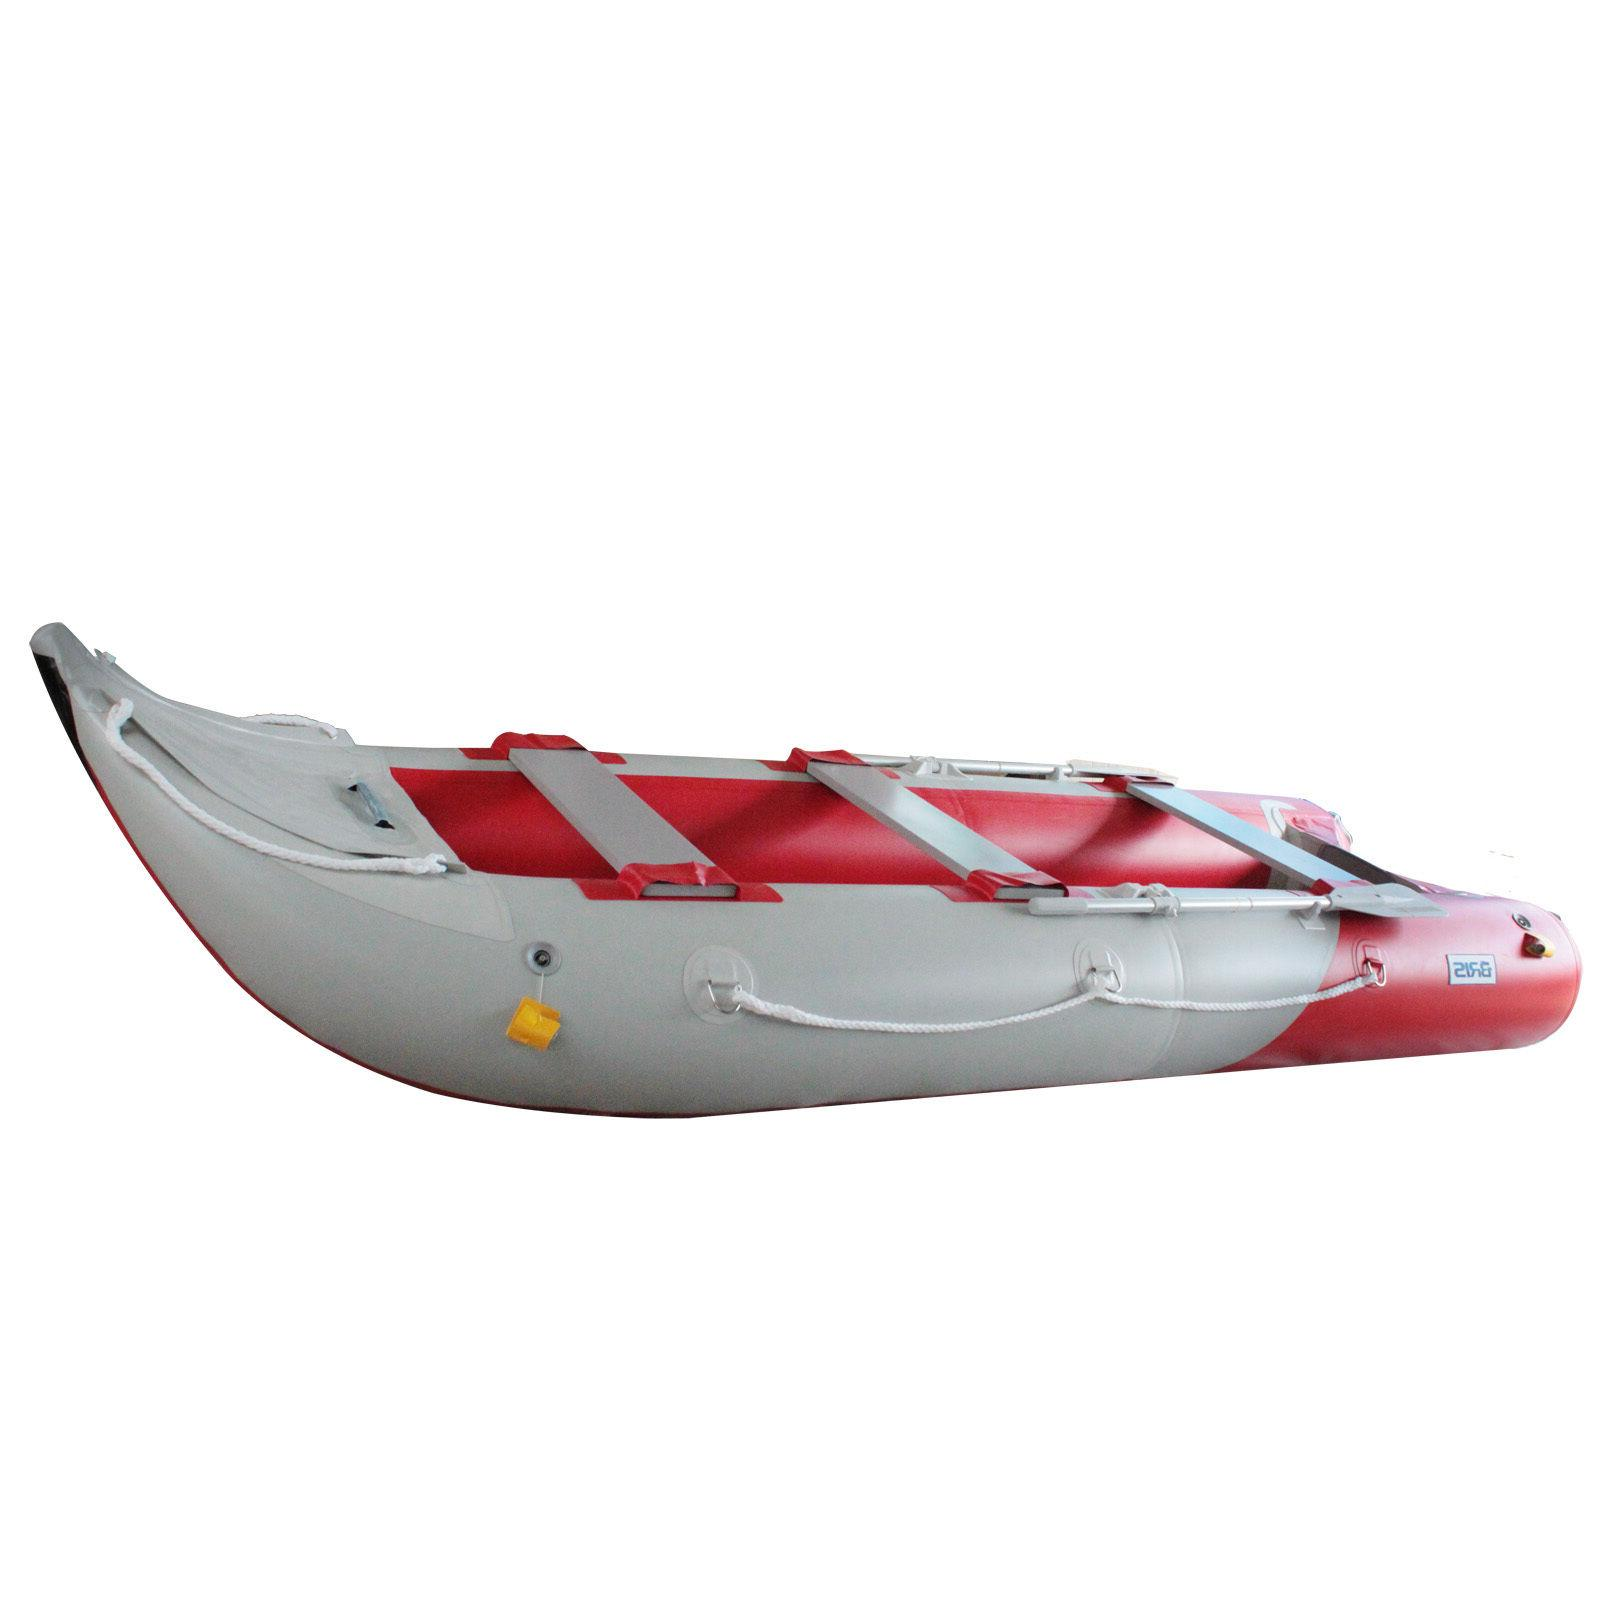 BRIS 14.1Ft Inflatable Boat Fishing Tender Boat With Air